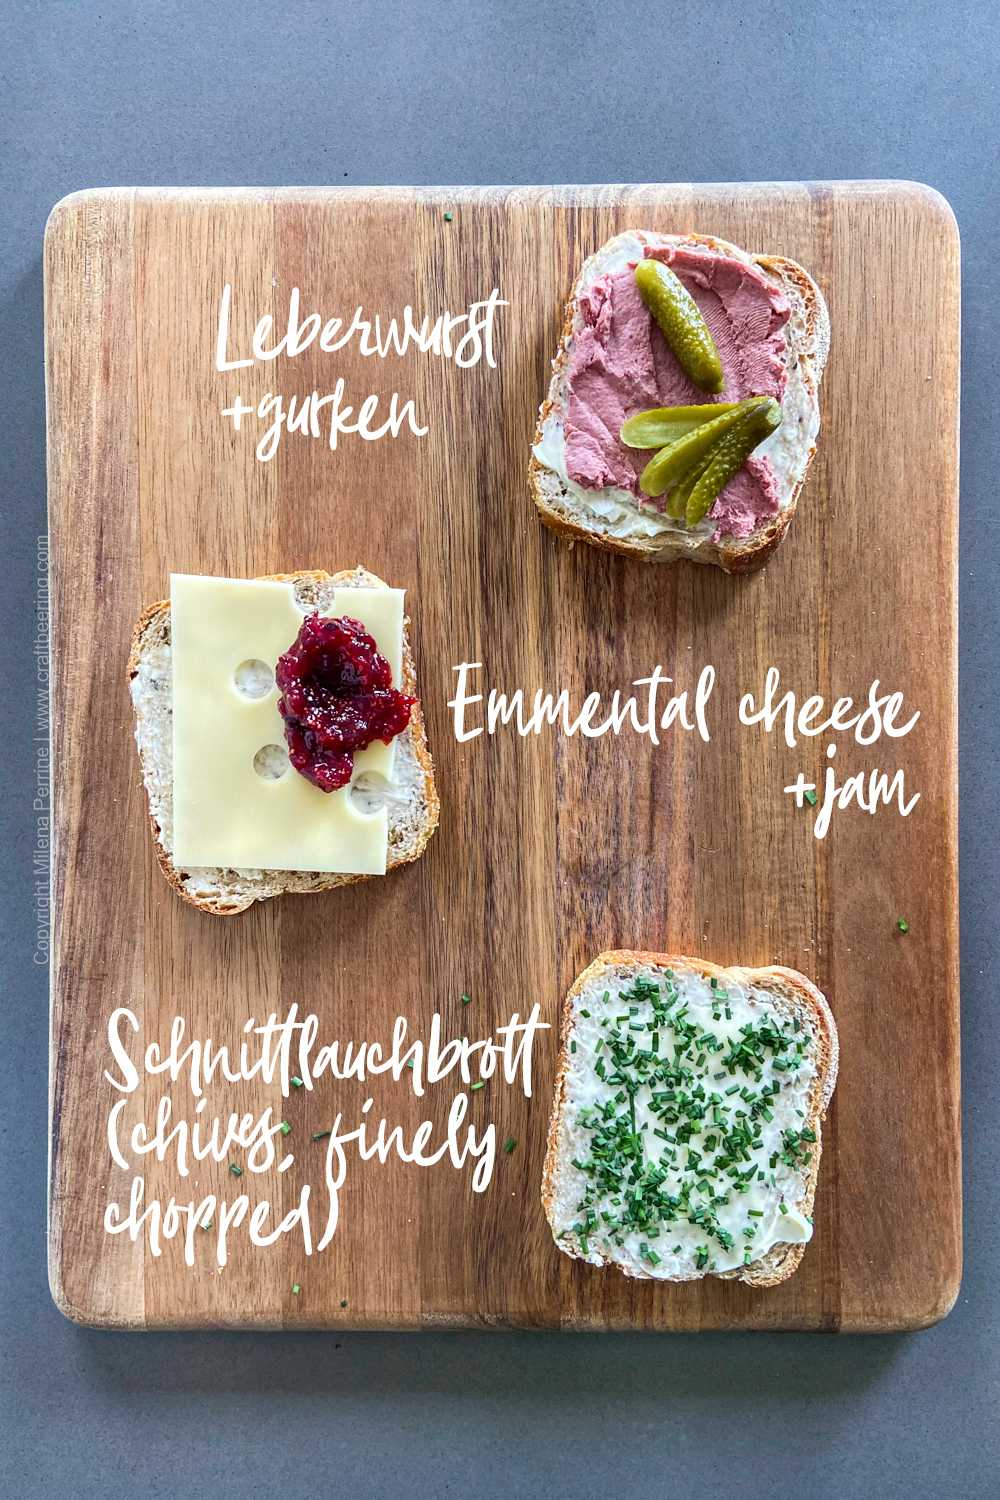 Butterbrot, open-faced cold German sandwiches consisting of farmer's bread (with rye), a generous slathering of butter and various toppings such as cheese, ham, jams, leberwurst or salami.